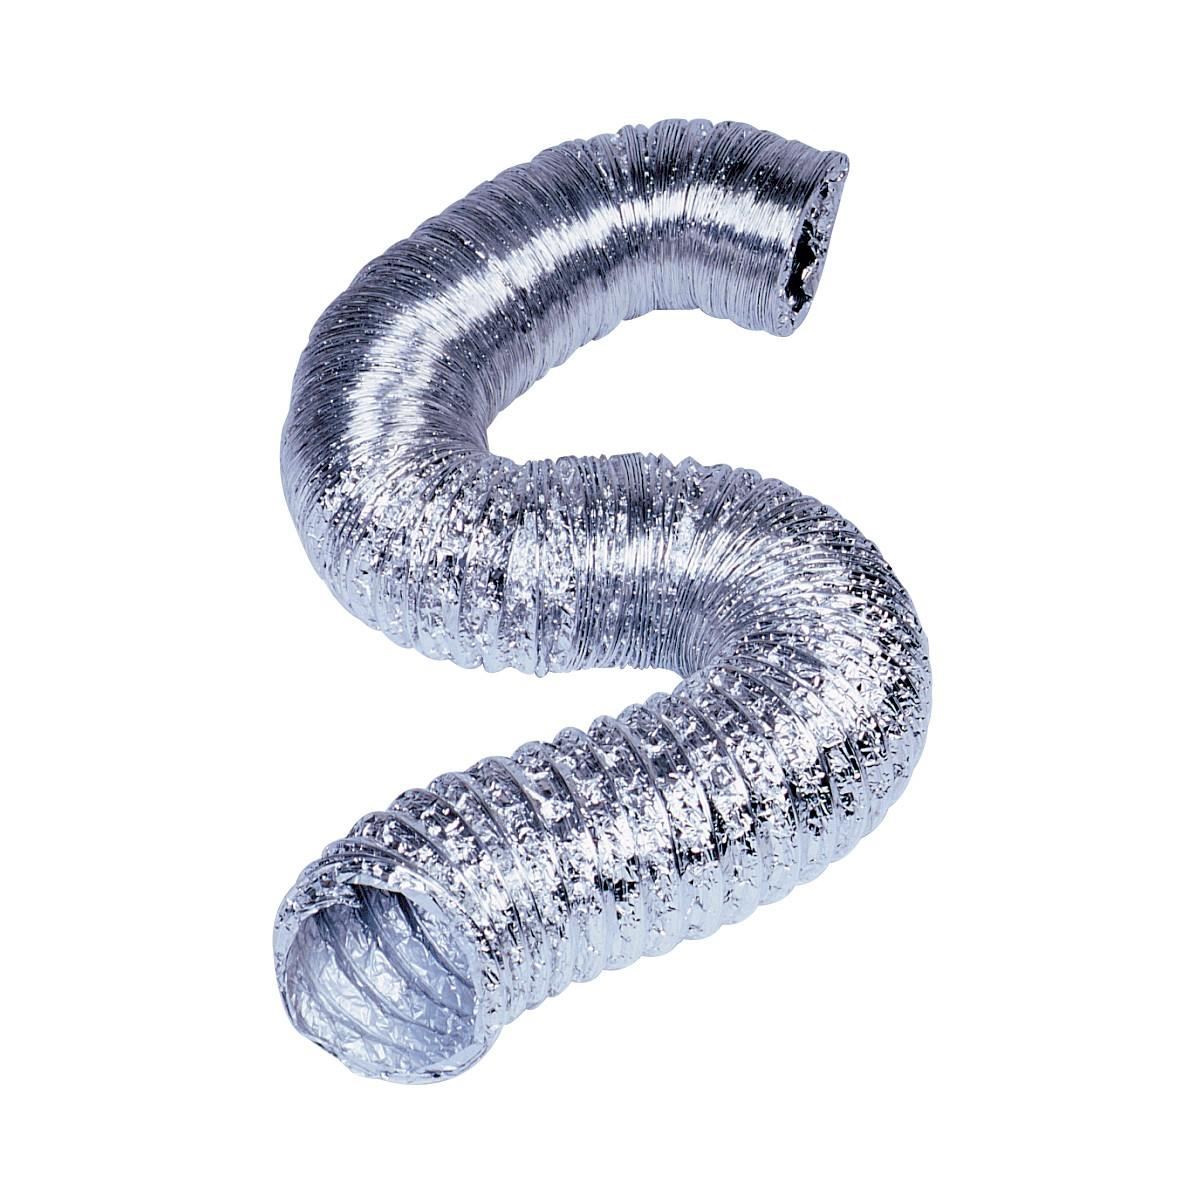 #4E5B7D MANROSE 100MMx3M ROUND FLEXIBLE DUCTING HOSE ALUMINIUM Most Effective 2425 Duct Hose Fittings pictures with 1200x1200 px on helpvideos.info - Air Conditioners, Air Coolers and more